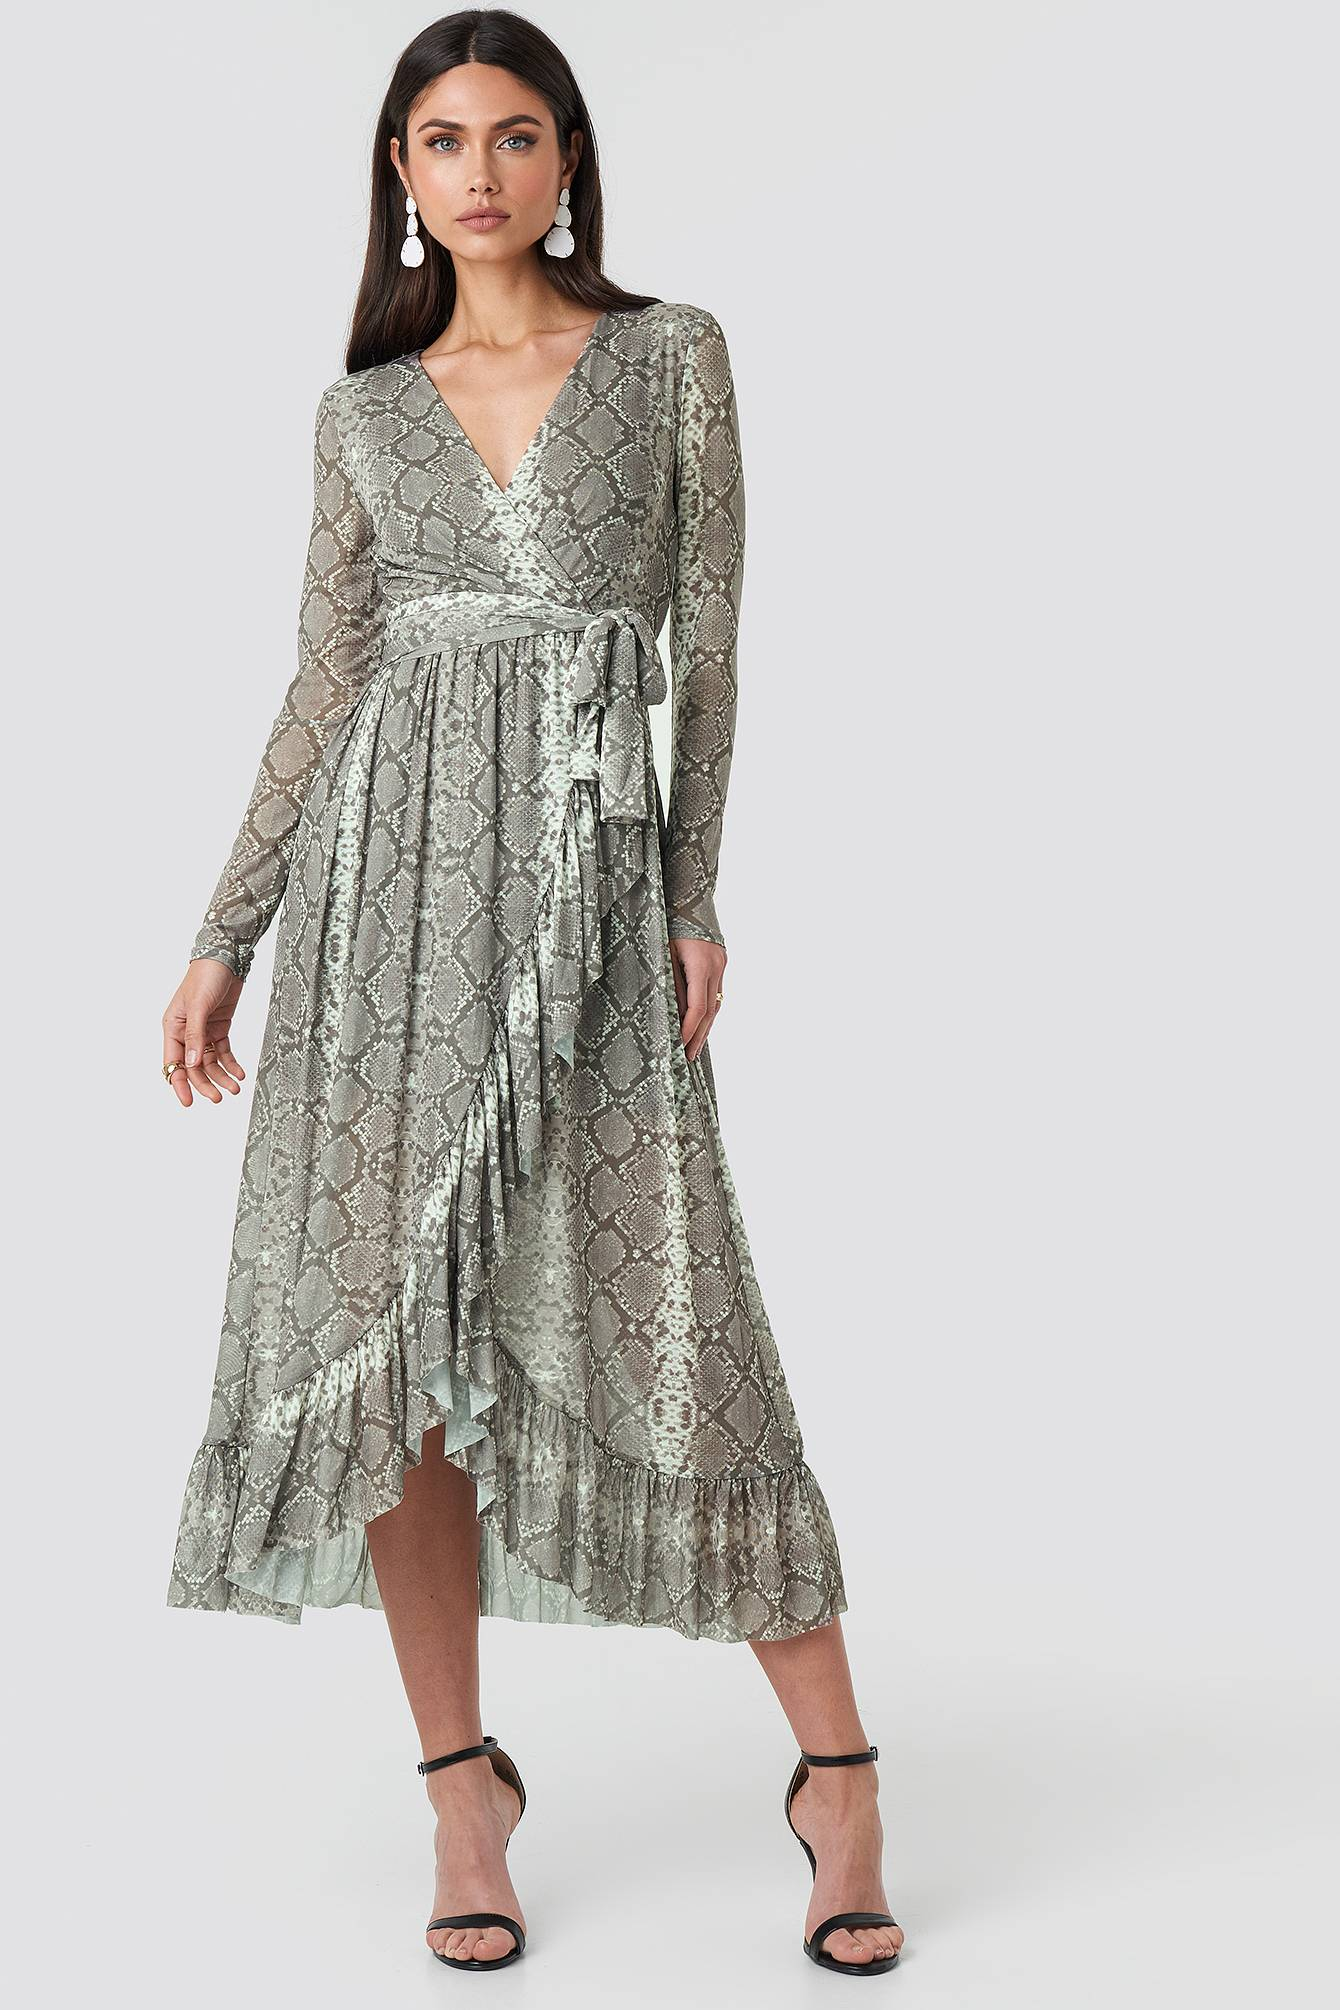 Image of NA-KD Trend Mesh Printed Frill Maxi Dress - Grey,Multicolor